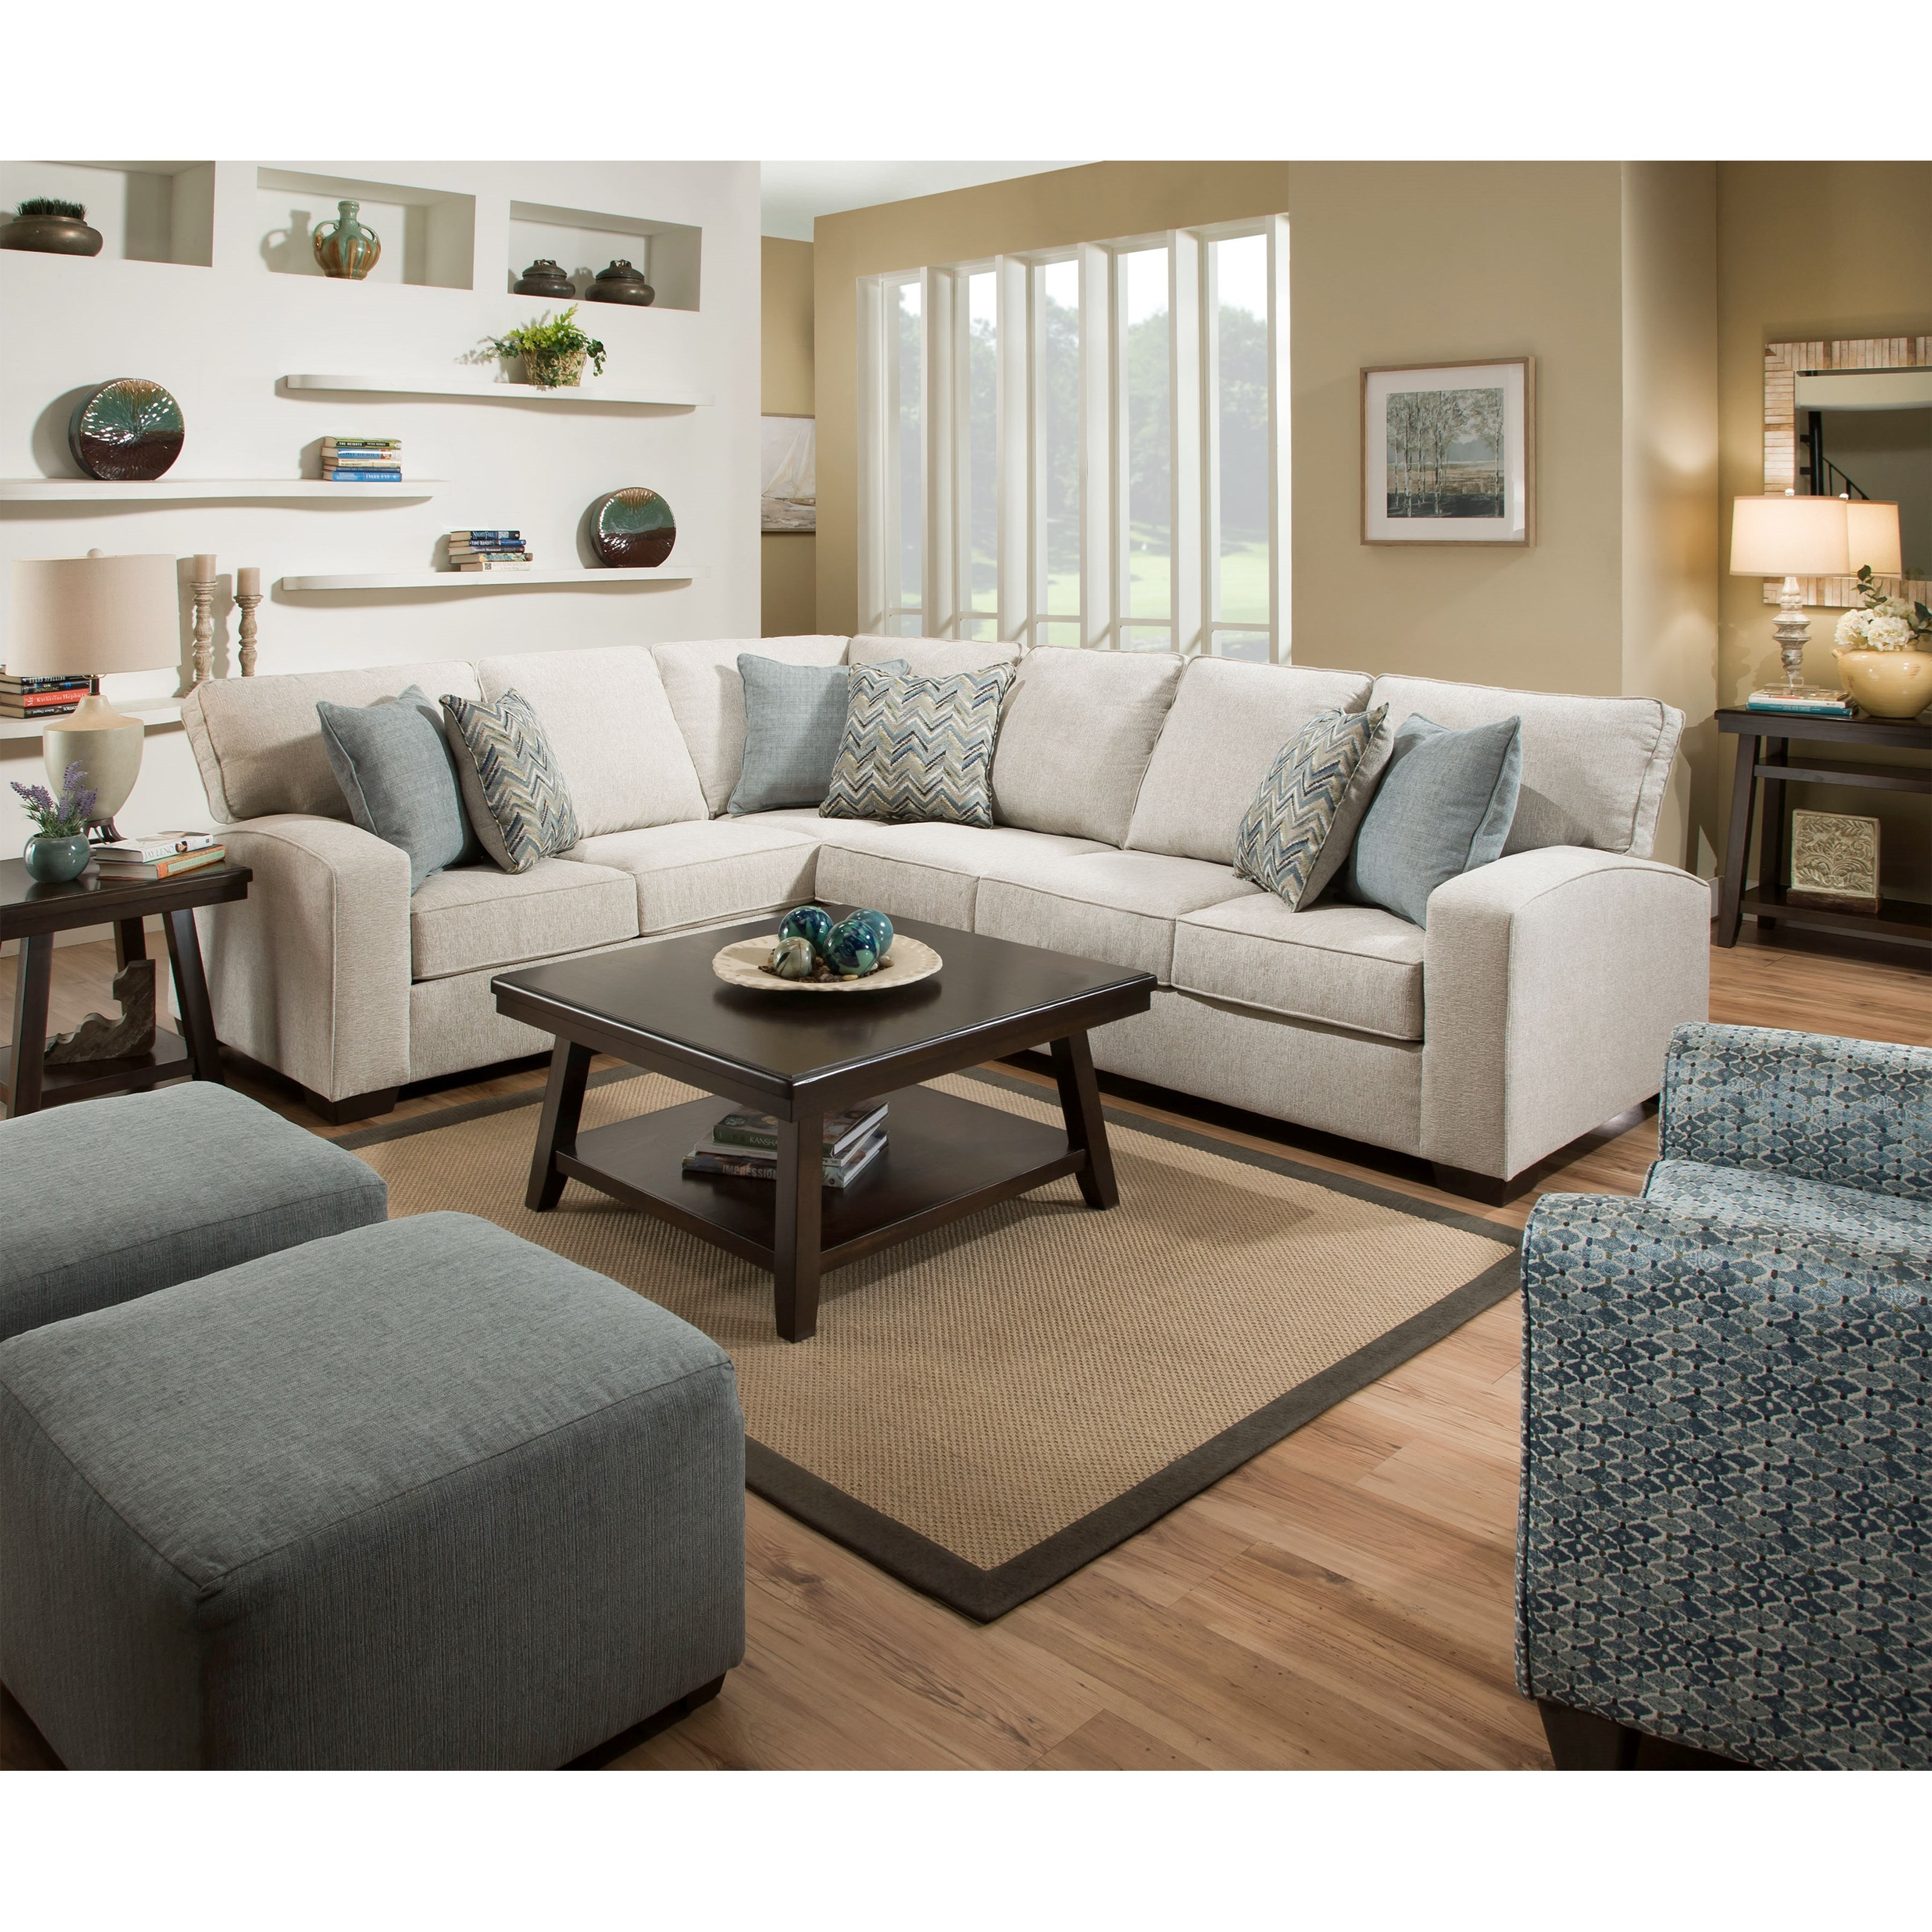 United Furniture Industries 6485 Transitional Loveseat: United Furniture Industries 7077 Transitional L-Shaped